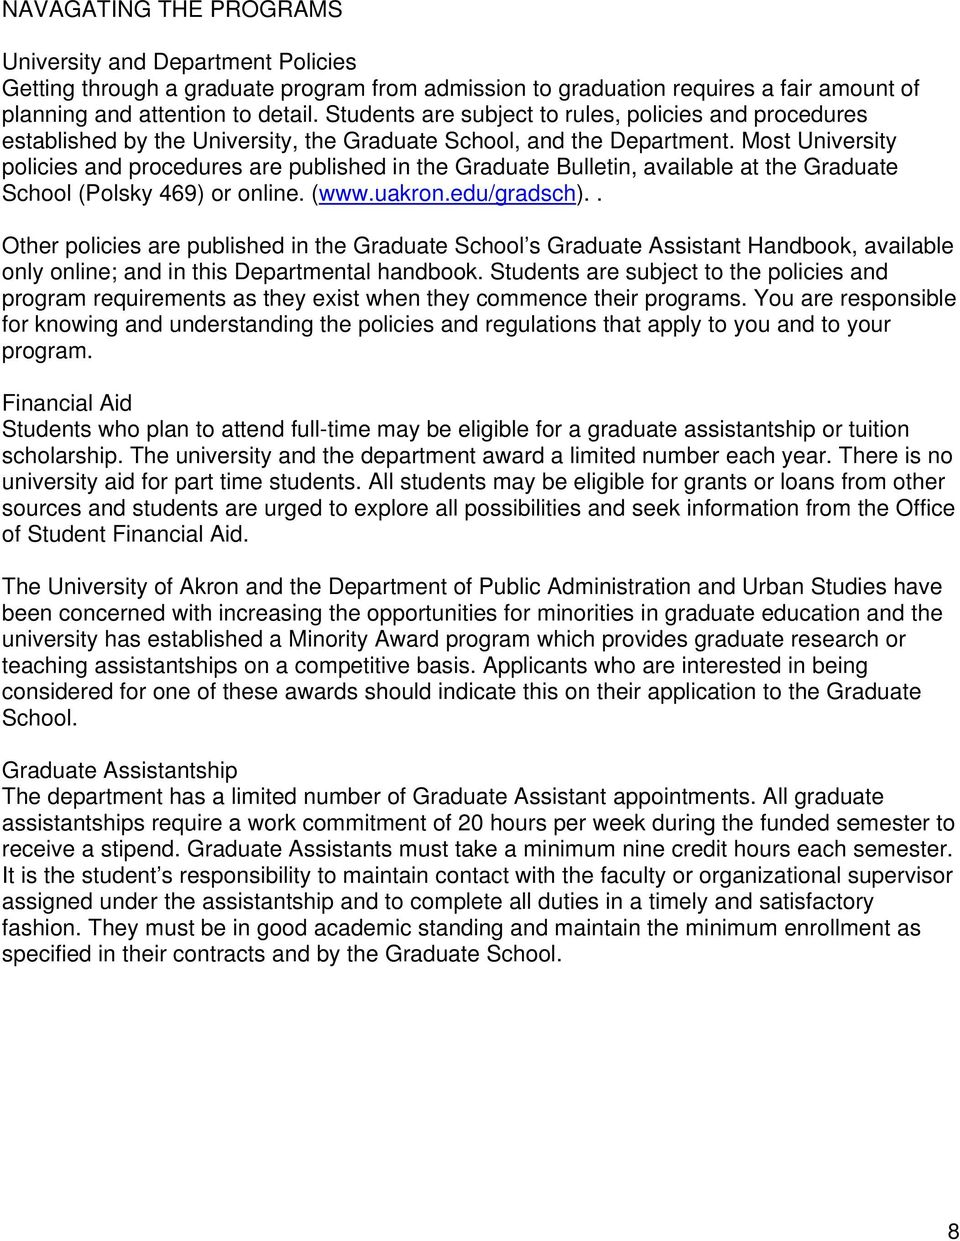 Most University policies and procedures are published in the Graduate Bulletin, available at the Graduate School (Polsky 469) or online. (www.uakron.edu/gradsch).